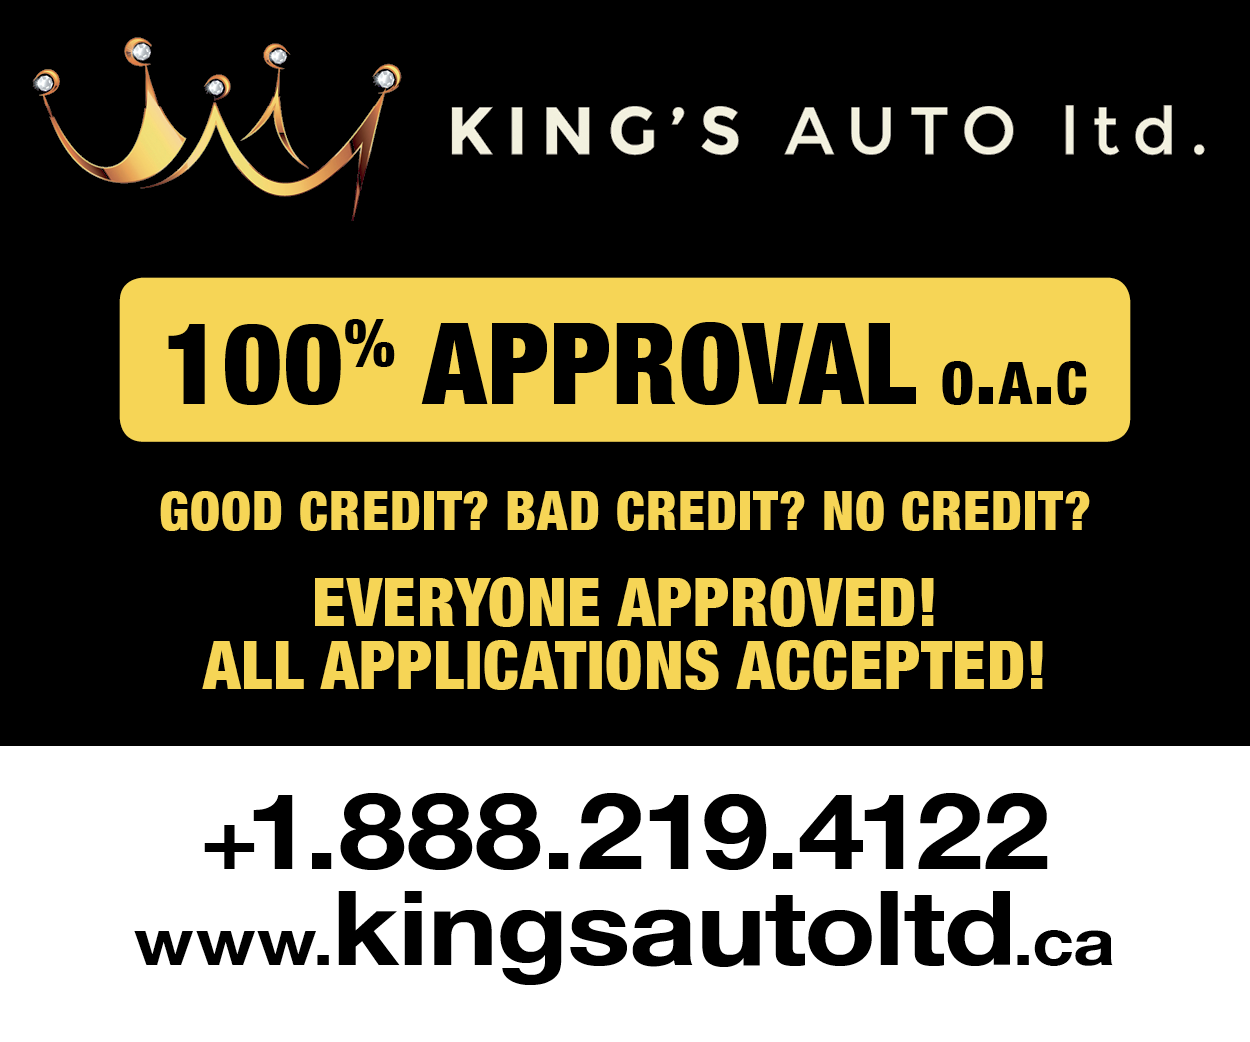 More from Kings Auto Ltd